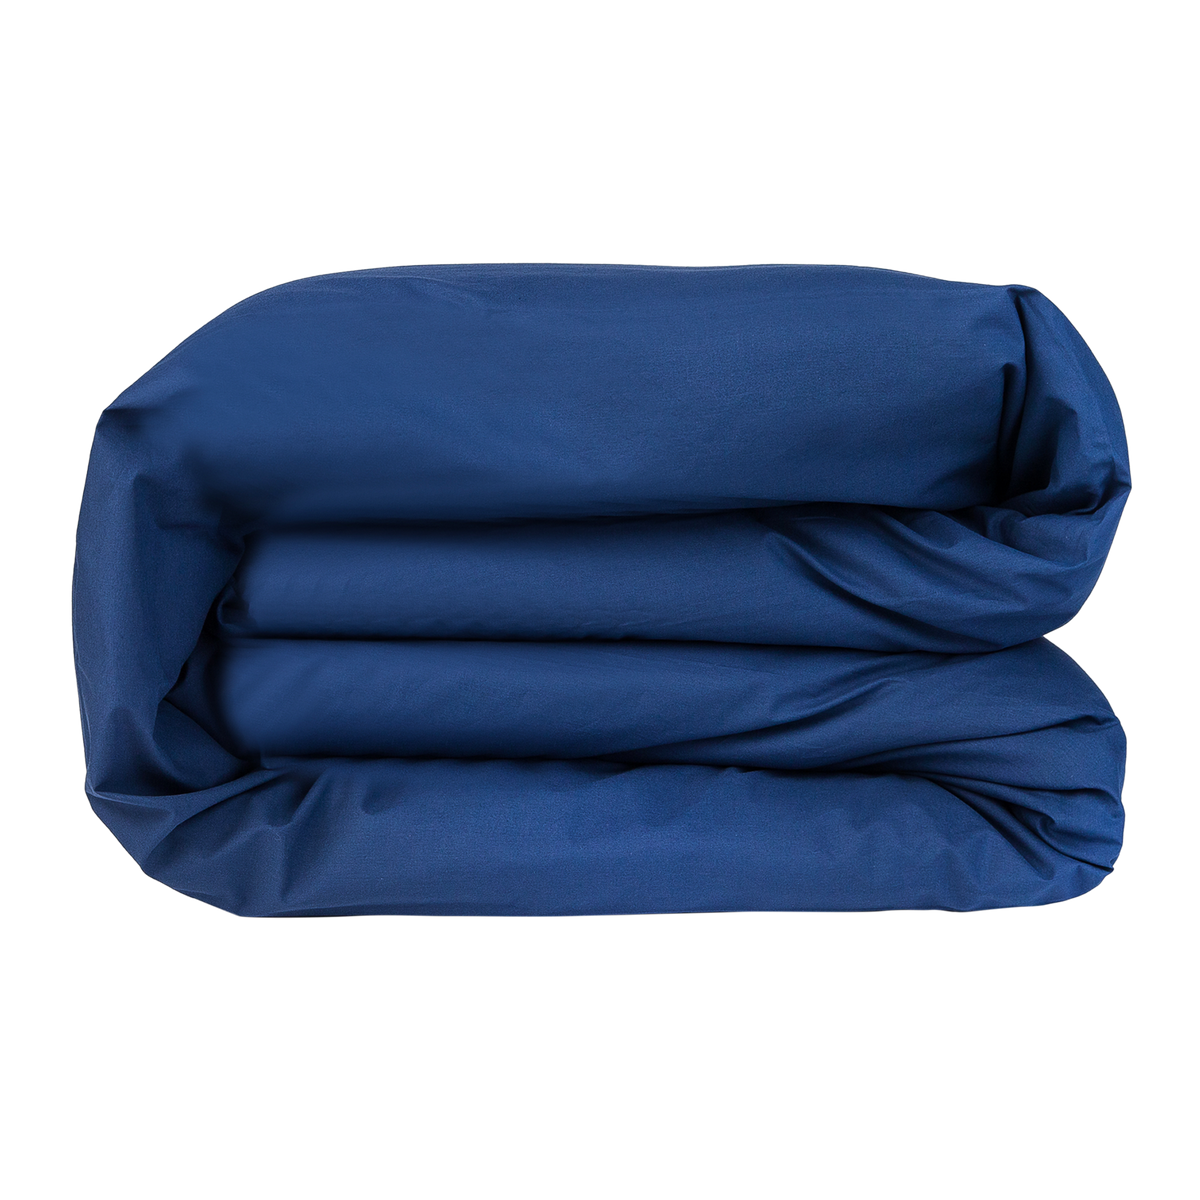 Essential Collection Percale Duvet Cover in Navy | Skylark+Owl Linen Co.